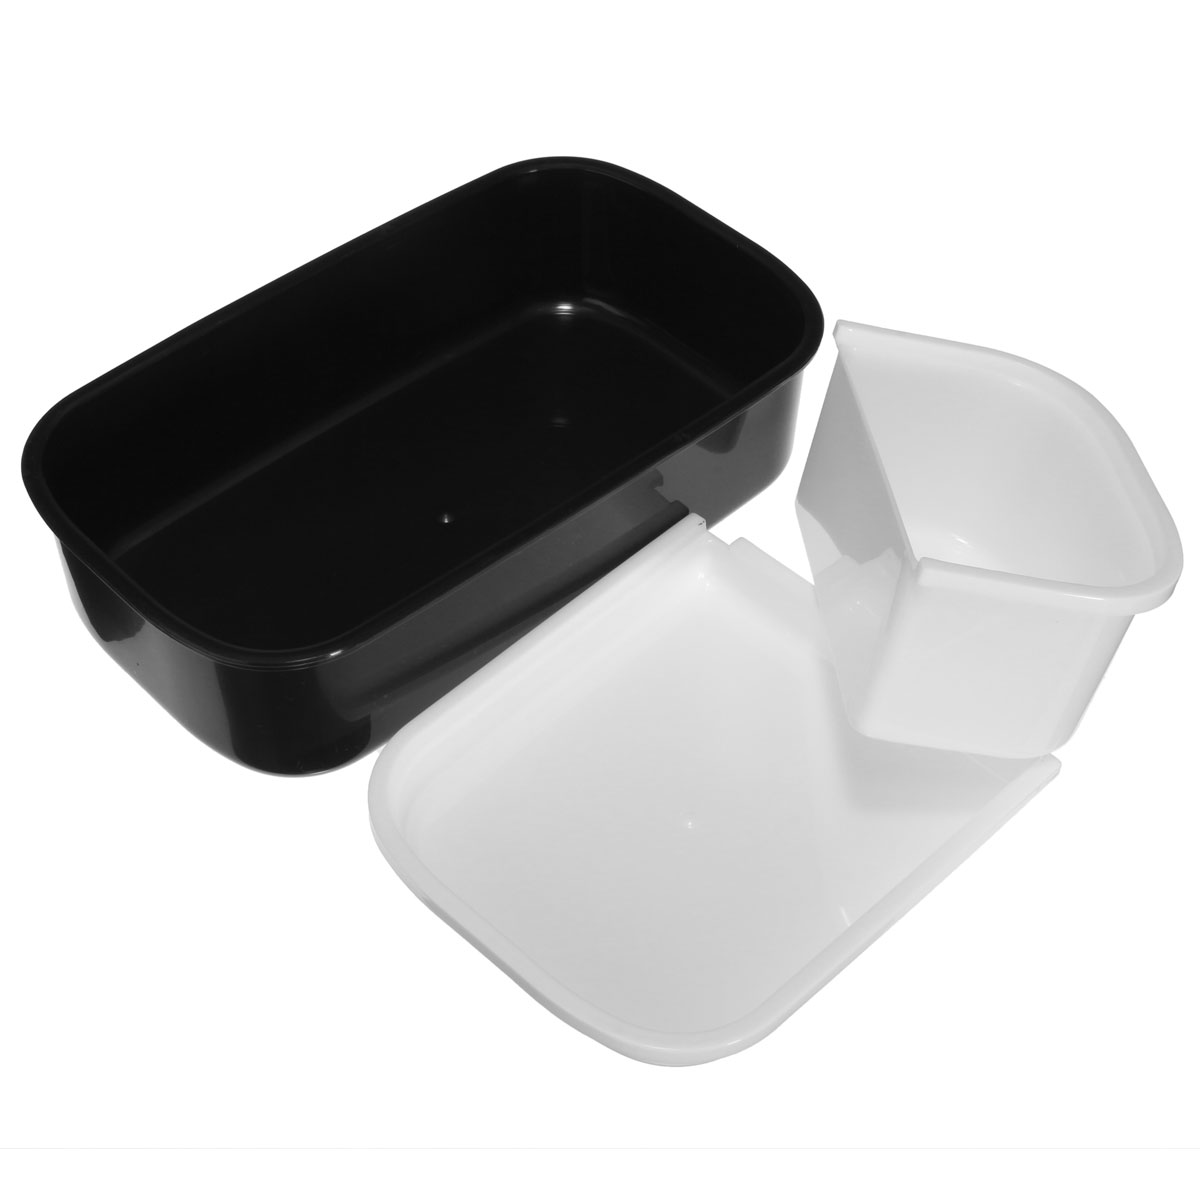 microwave plastic bento lunch box container large storage spoon fork black. Black Bedroom Furniture Sets. Home Design Ideas